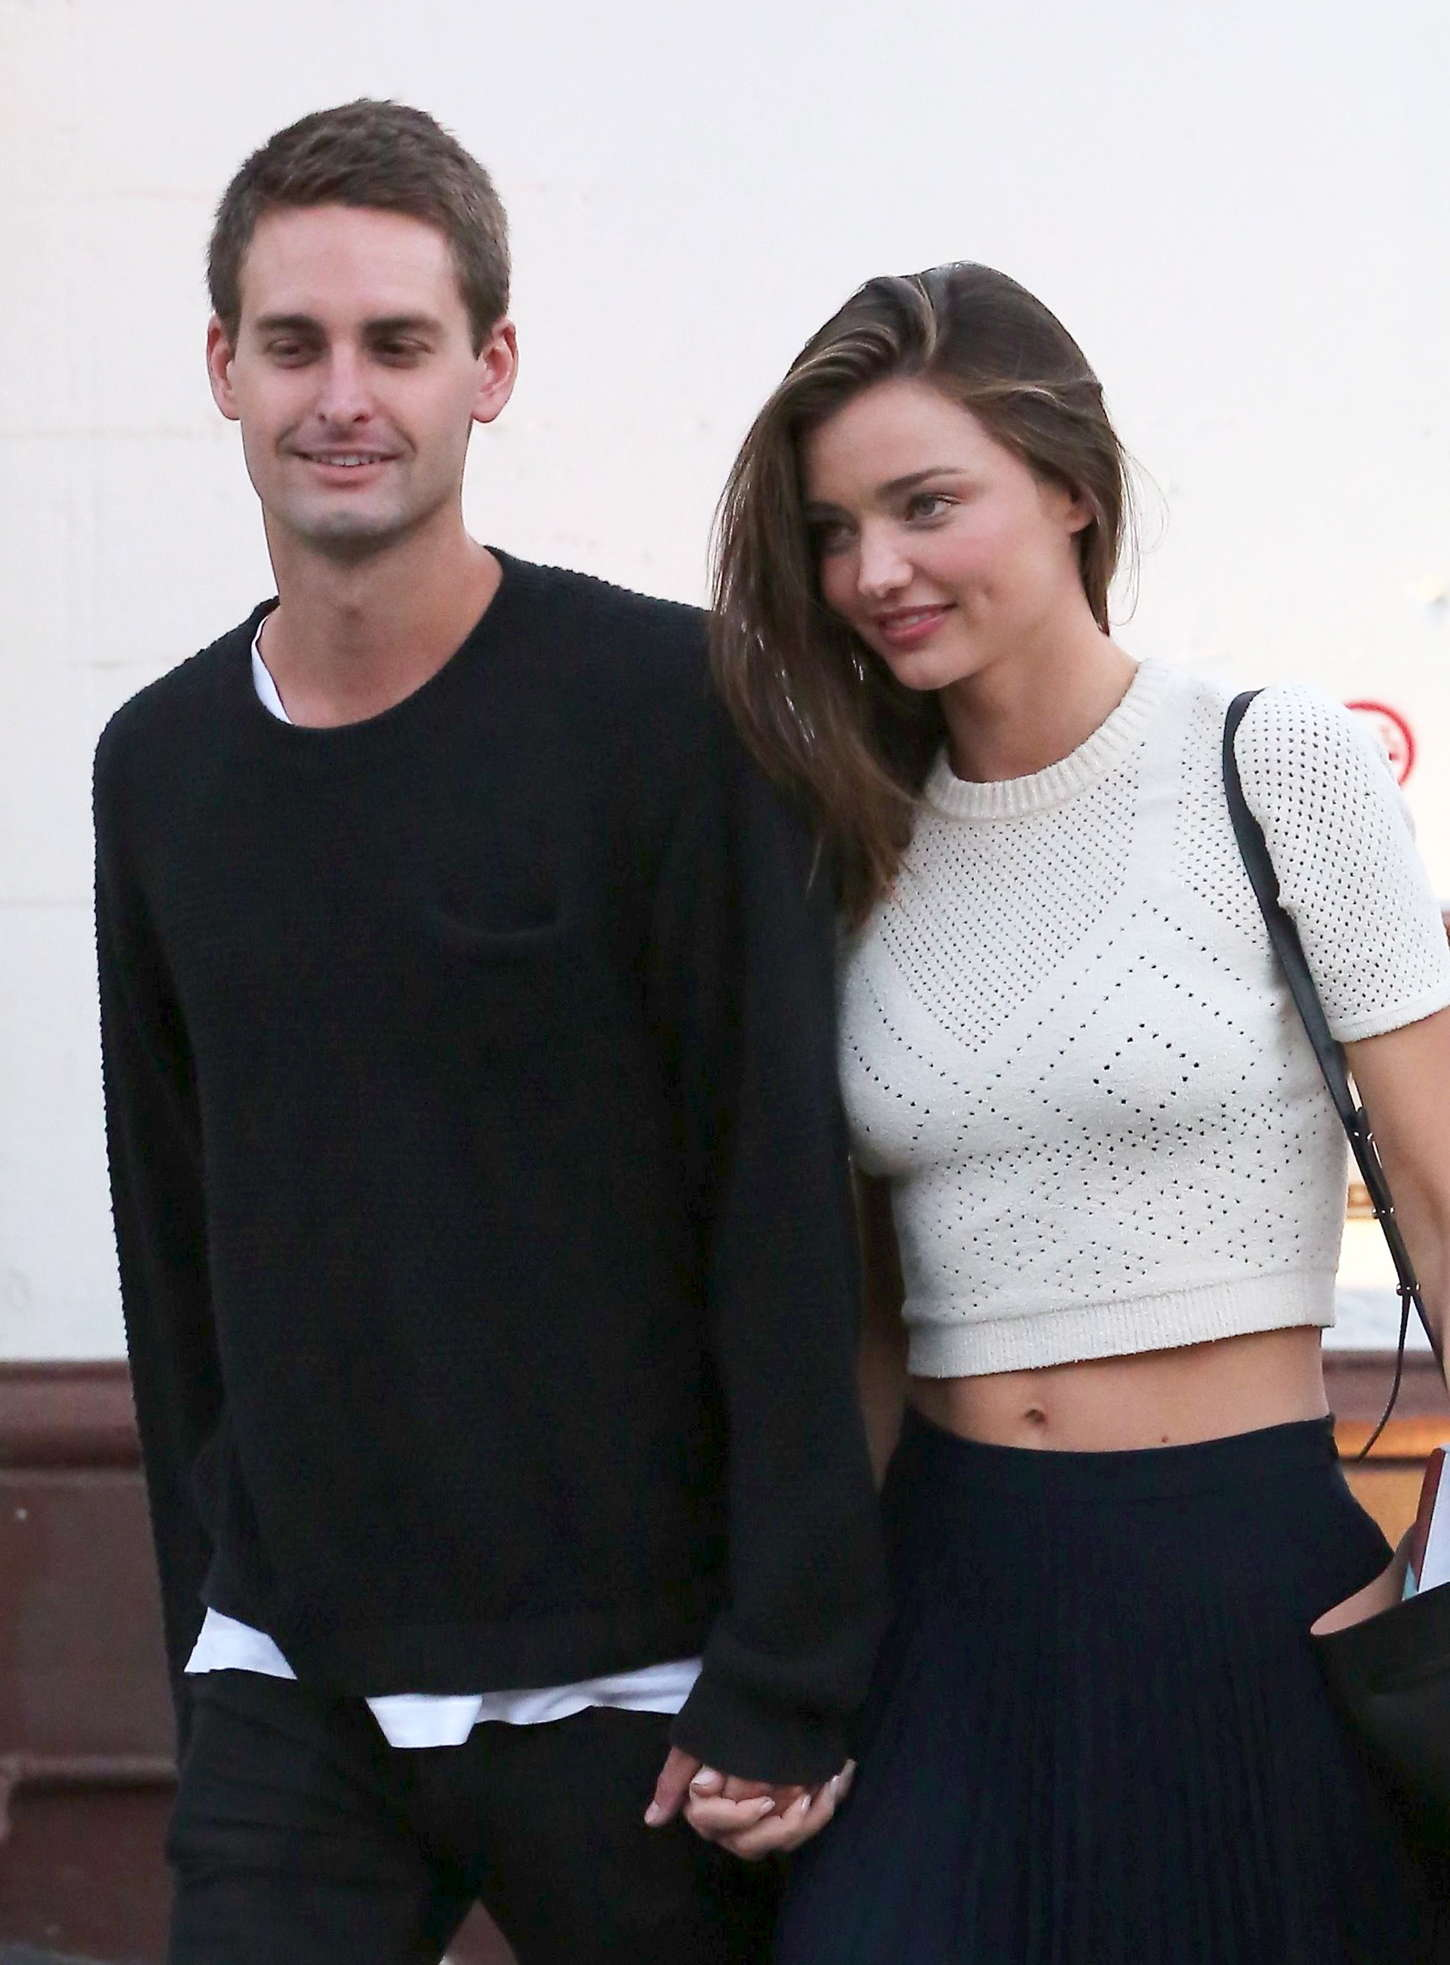 Spiegel 24 Miranda Kerr With Evan Spiegel Out In Malibu 24 Gotceleb